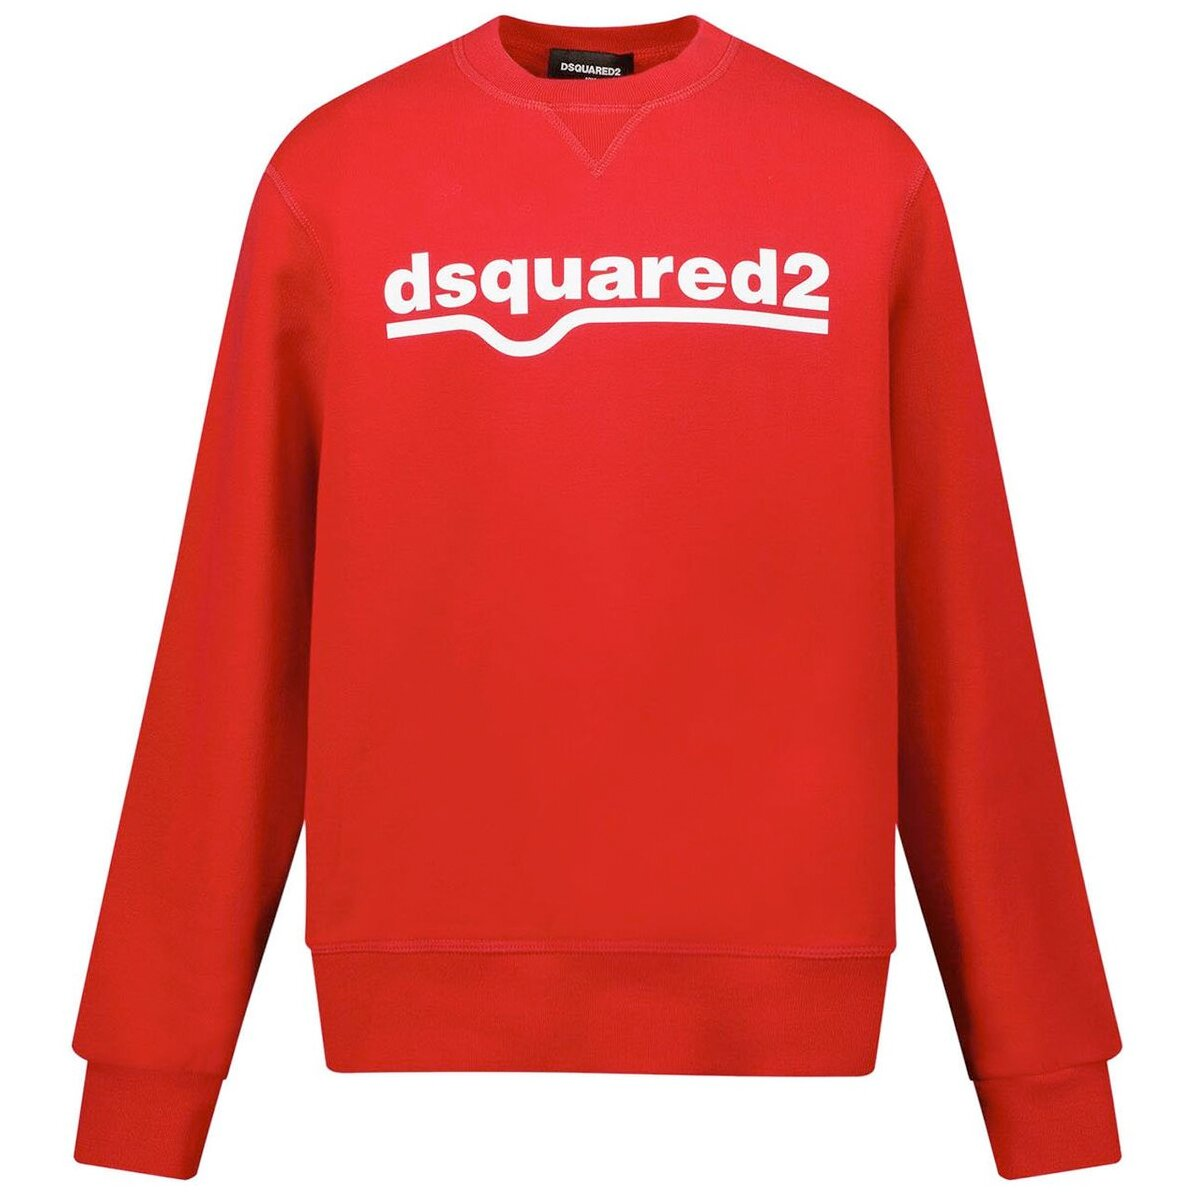 Dsquared2 Sweater Rood DQ0541 relax fit